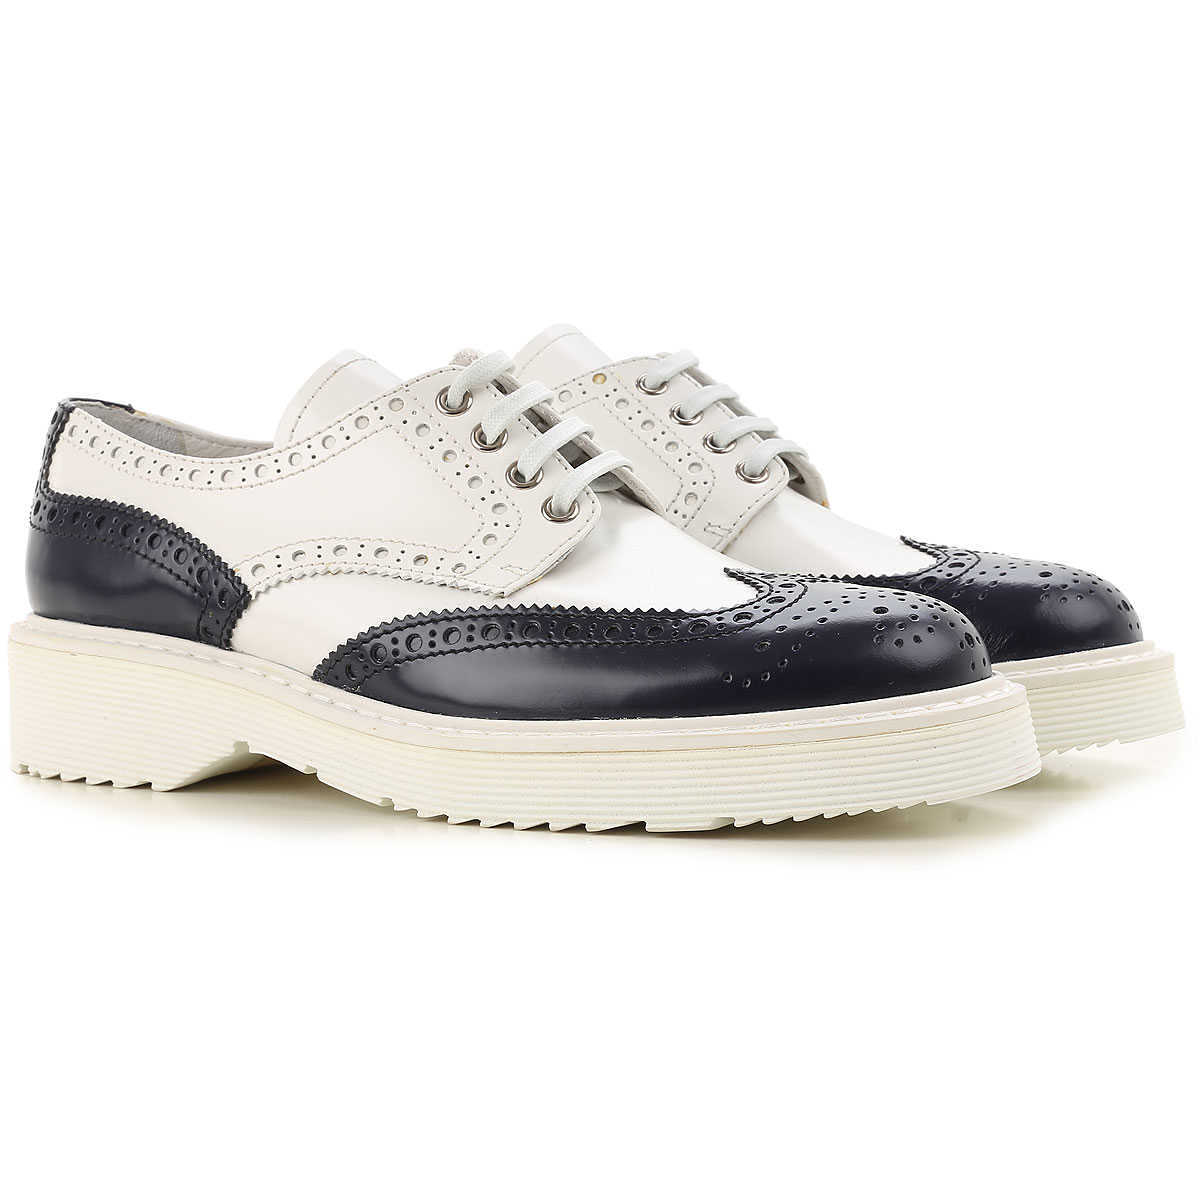 Prada Brogues Oxford Shoes On Sale in Outlet Baltic Blue - GOOFASH